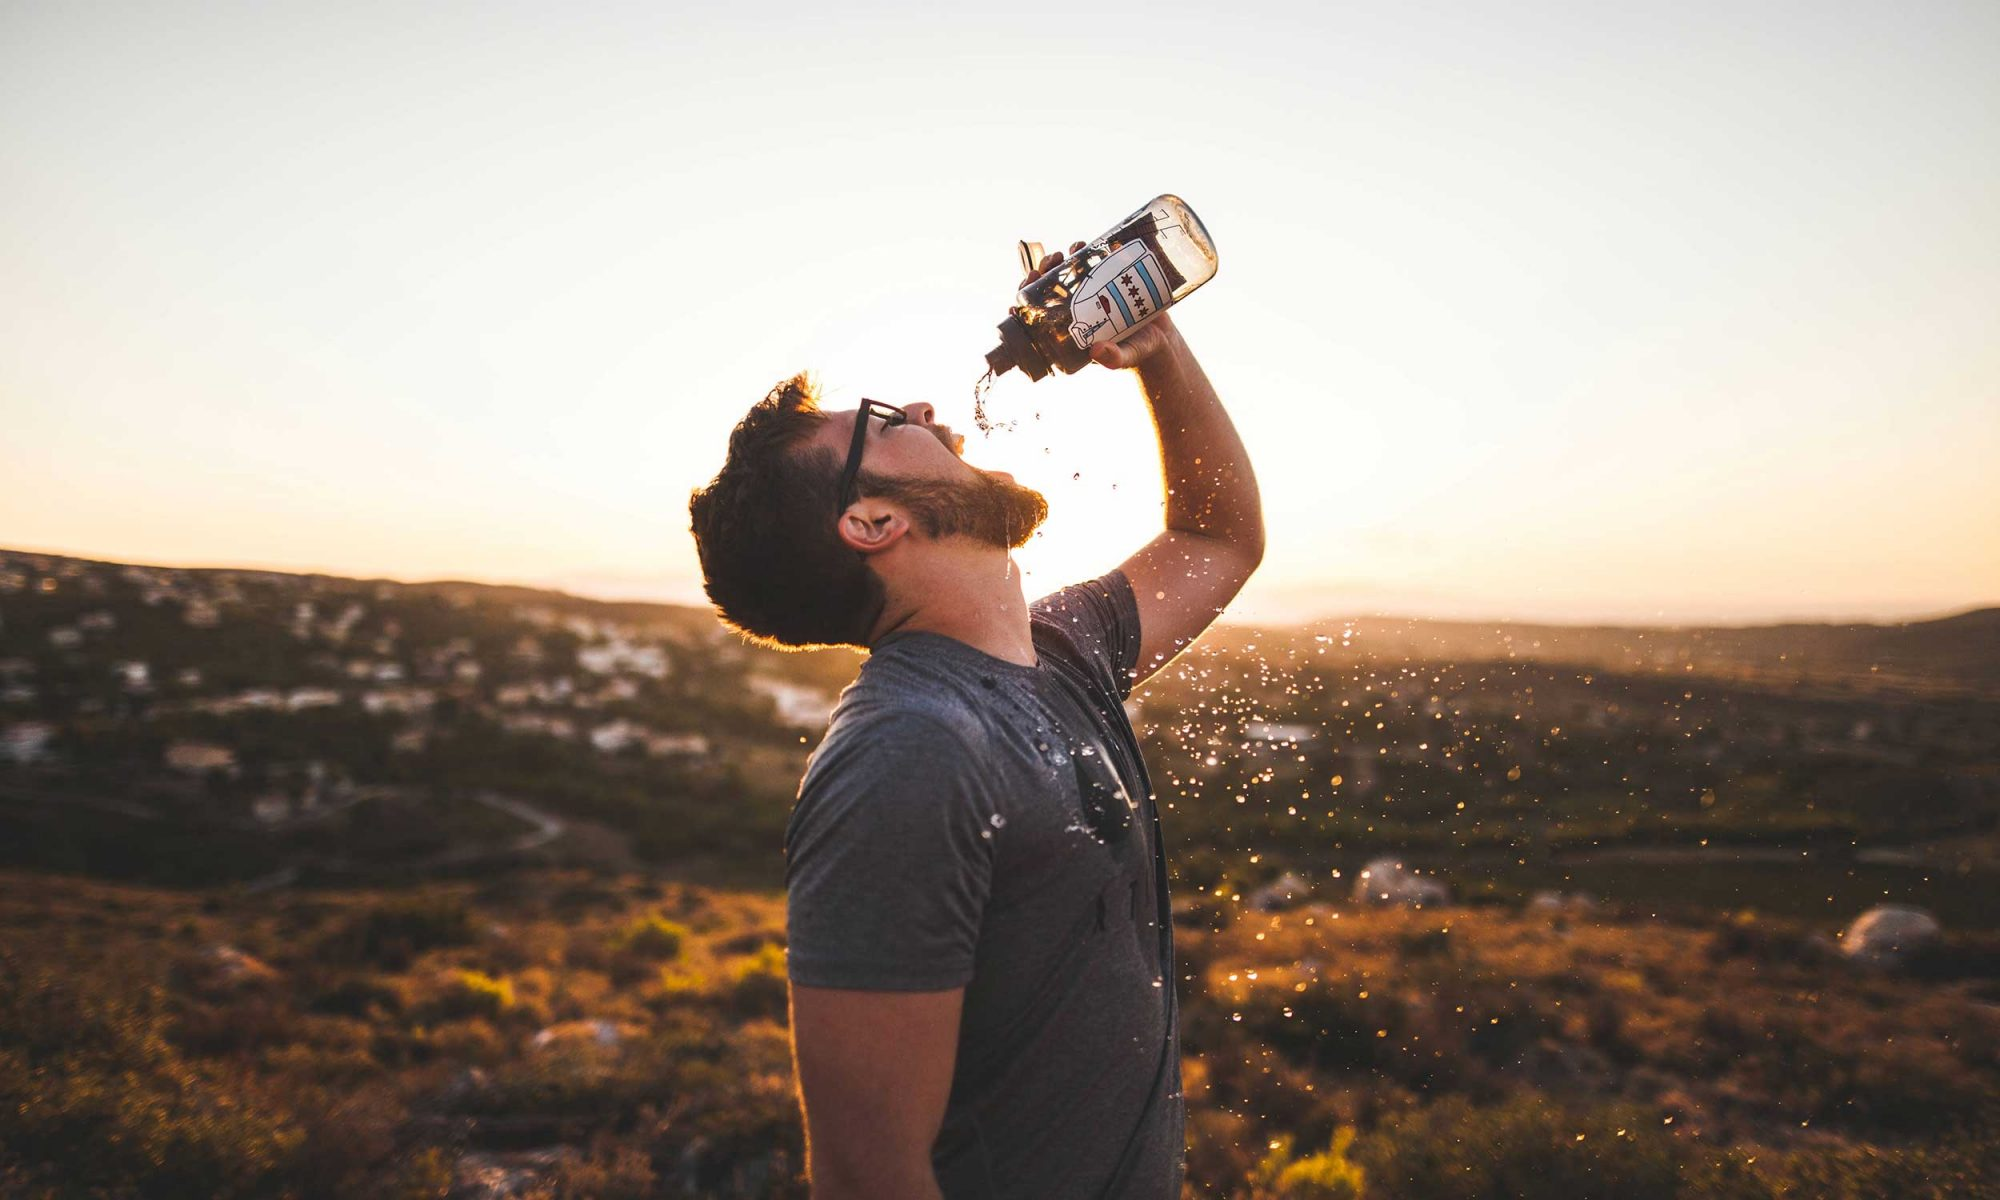 EC: How Much Water Should You Drink Every Day?